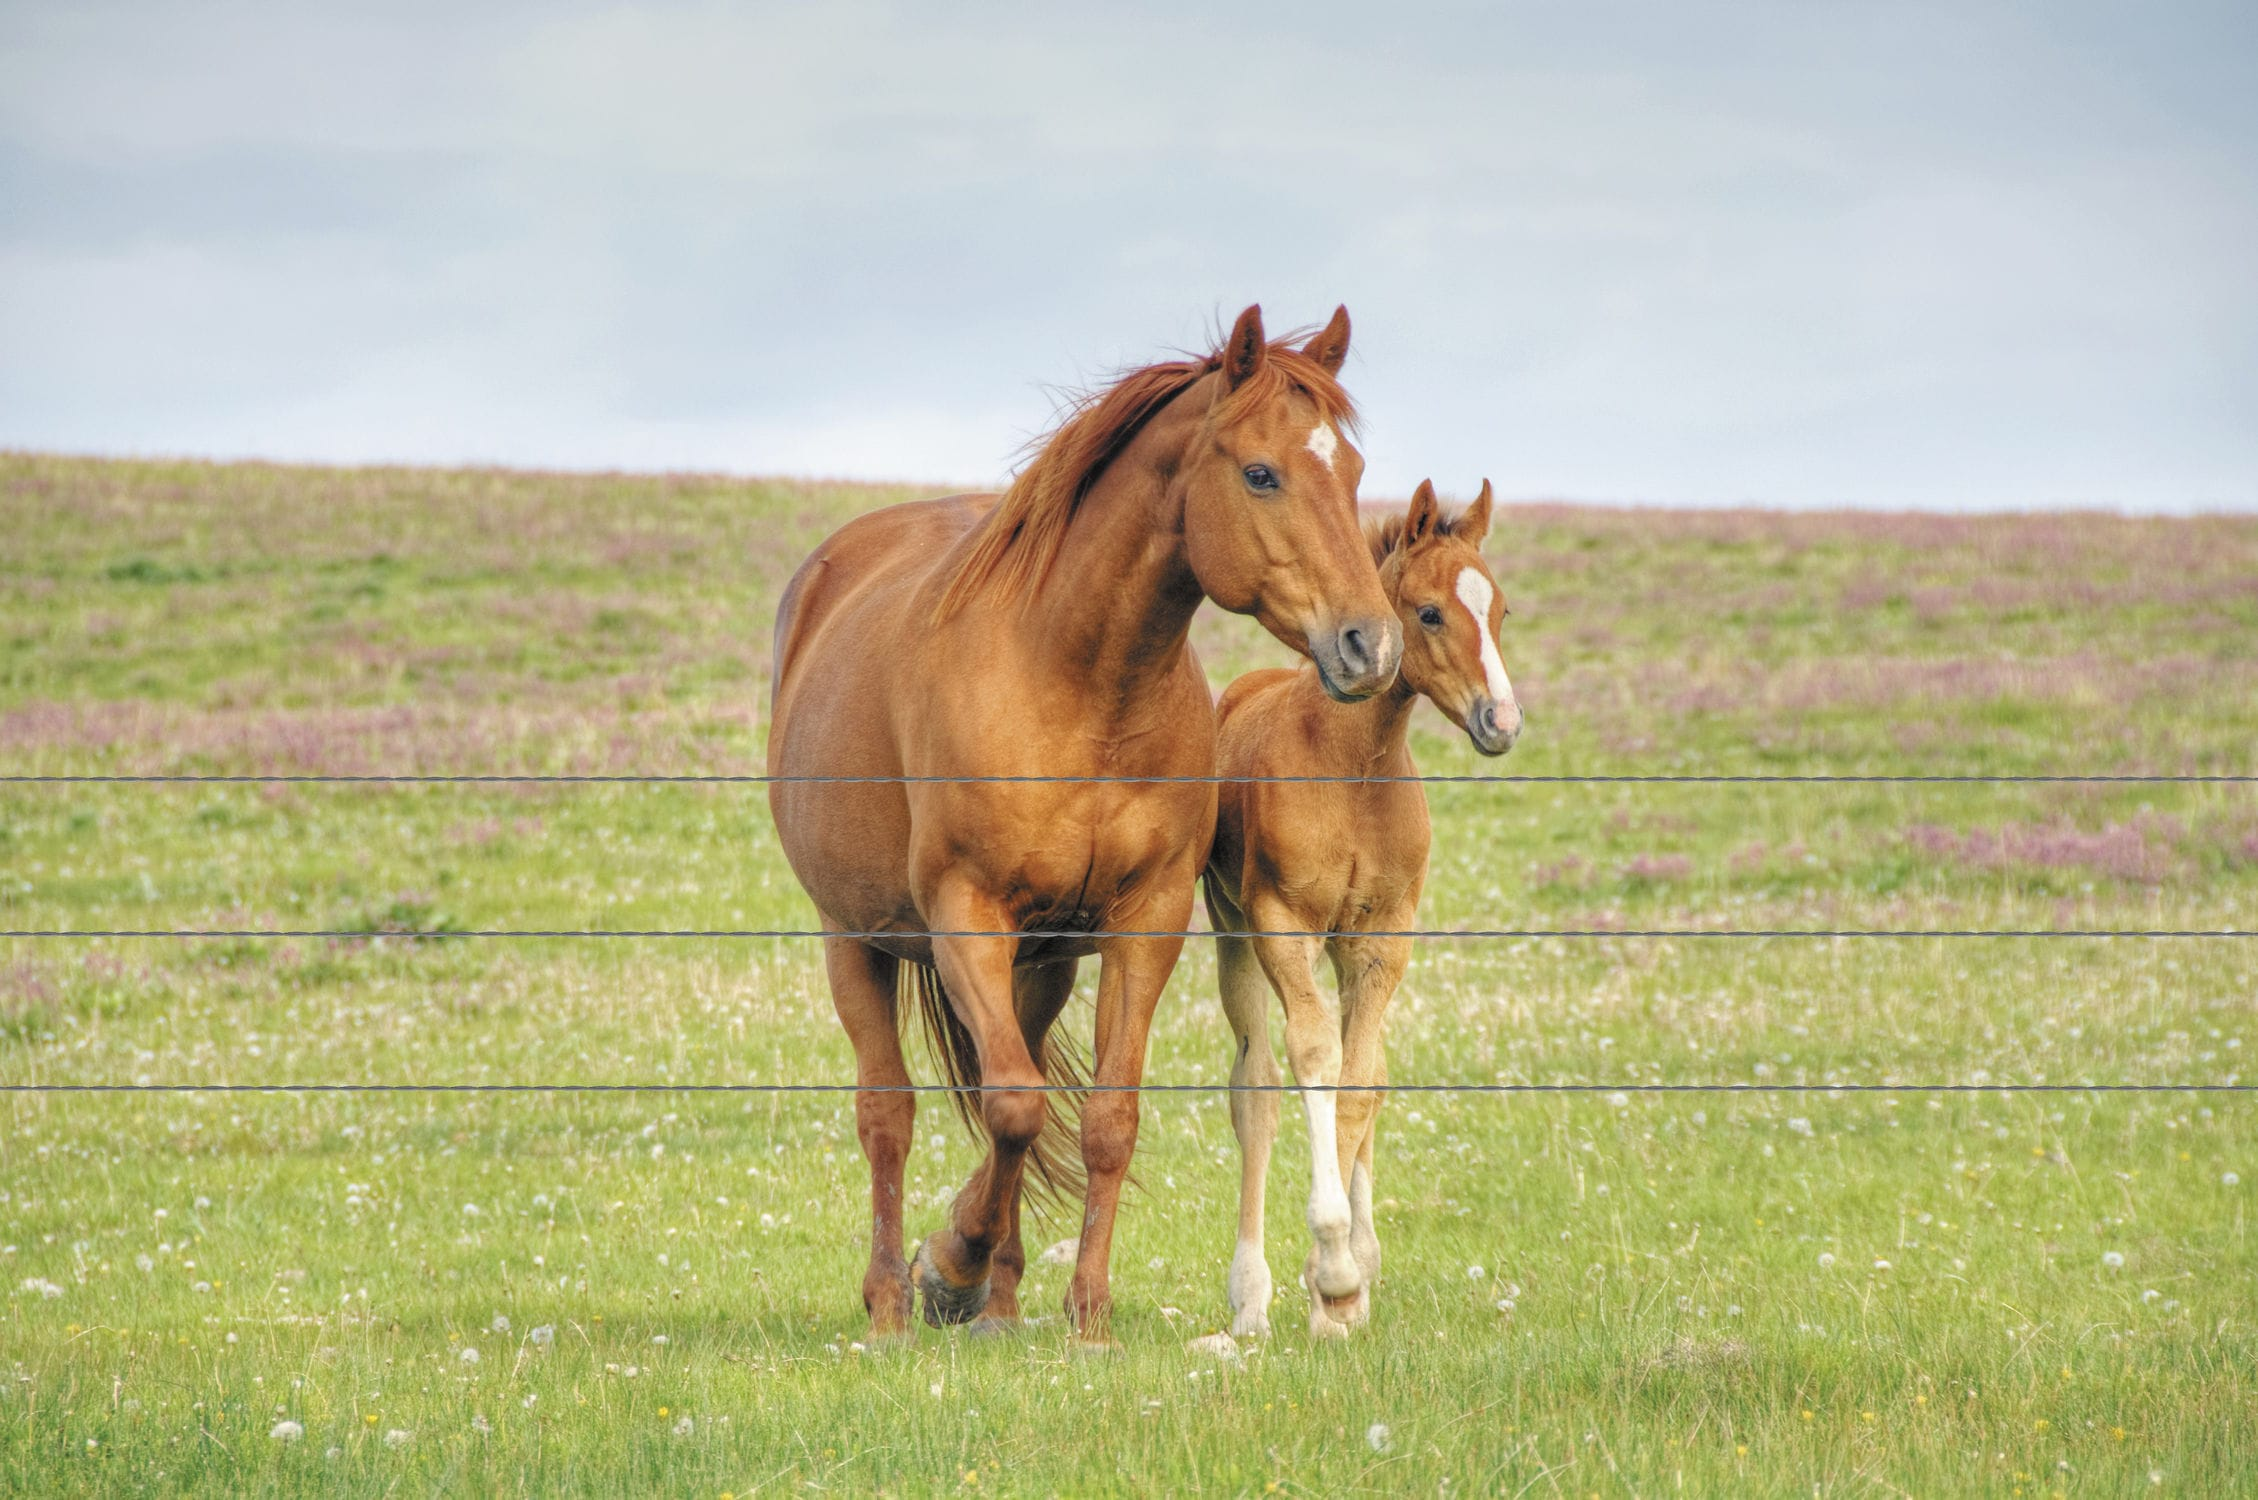 The gestation period for a mare is 11 months.